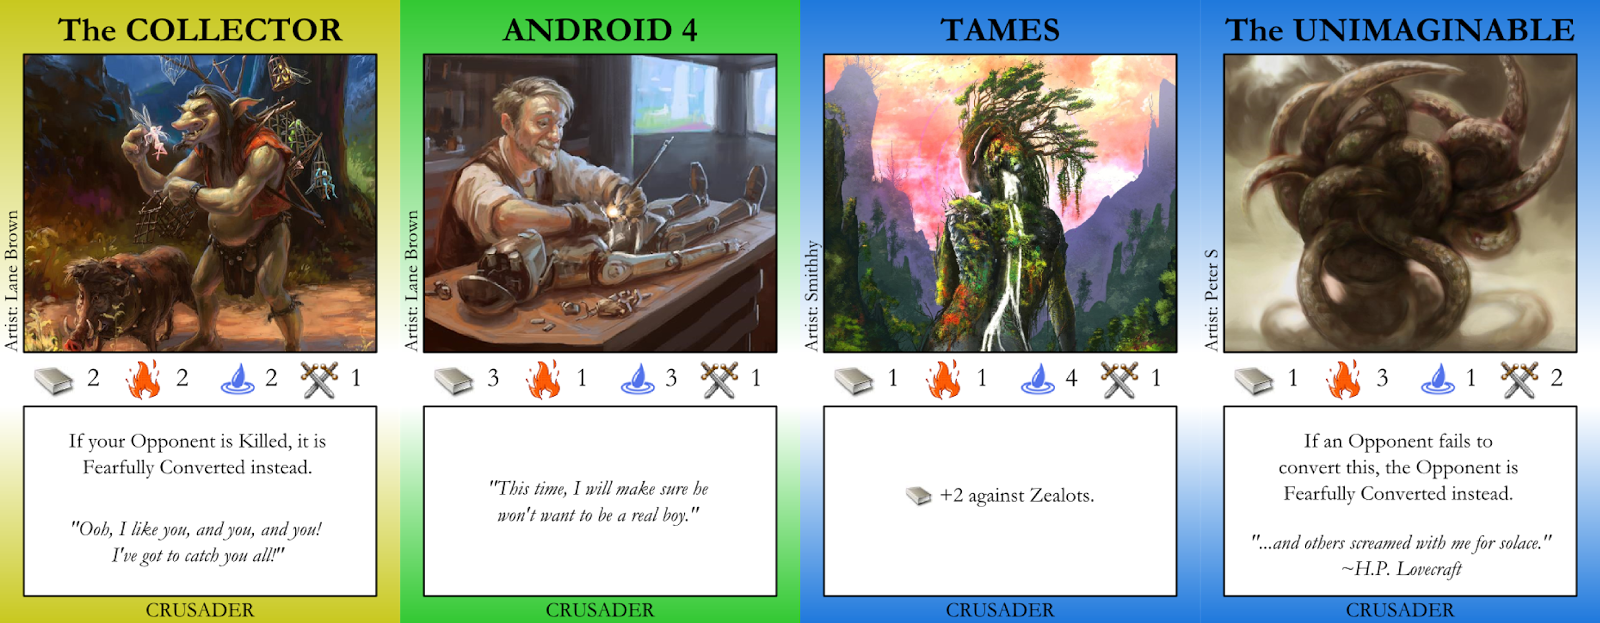 The Collector, Android 4, Tames, Teh Unimaginable